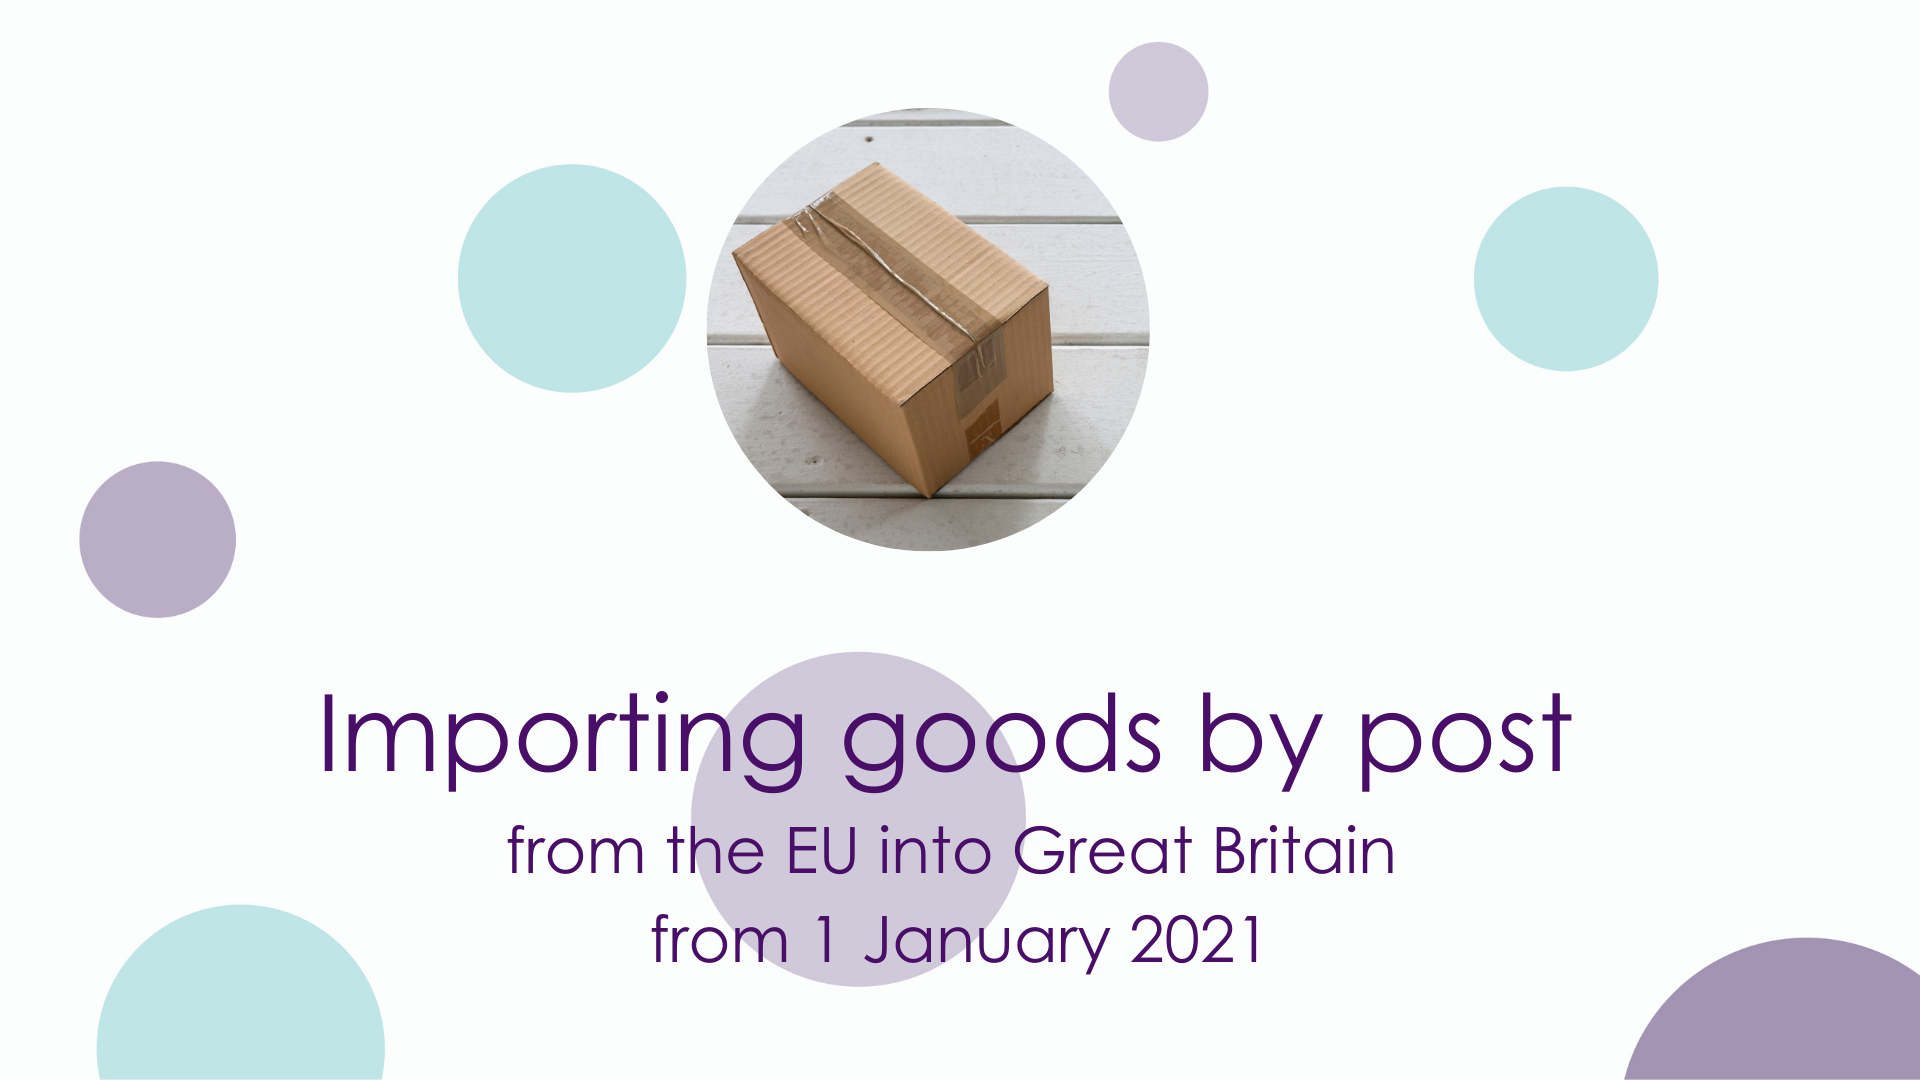 Importing goods by post (from the EU into Great Britain) from 1 January 2021